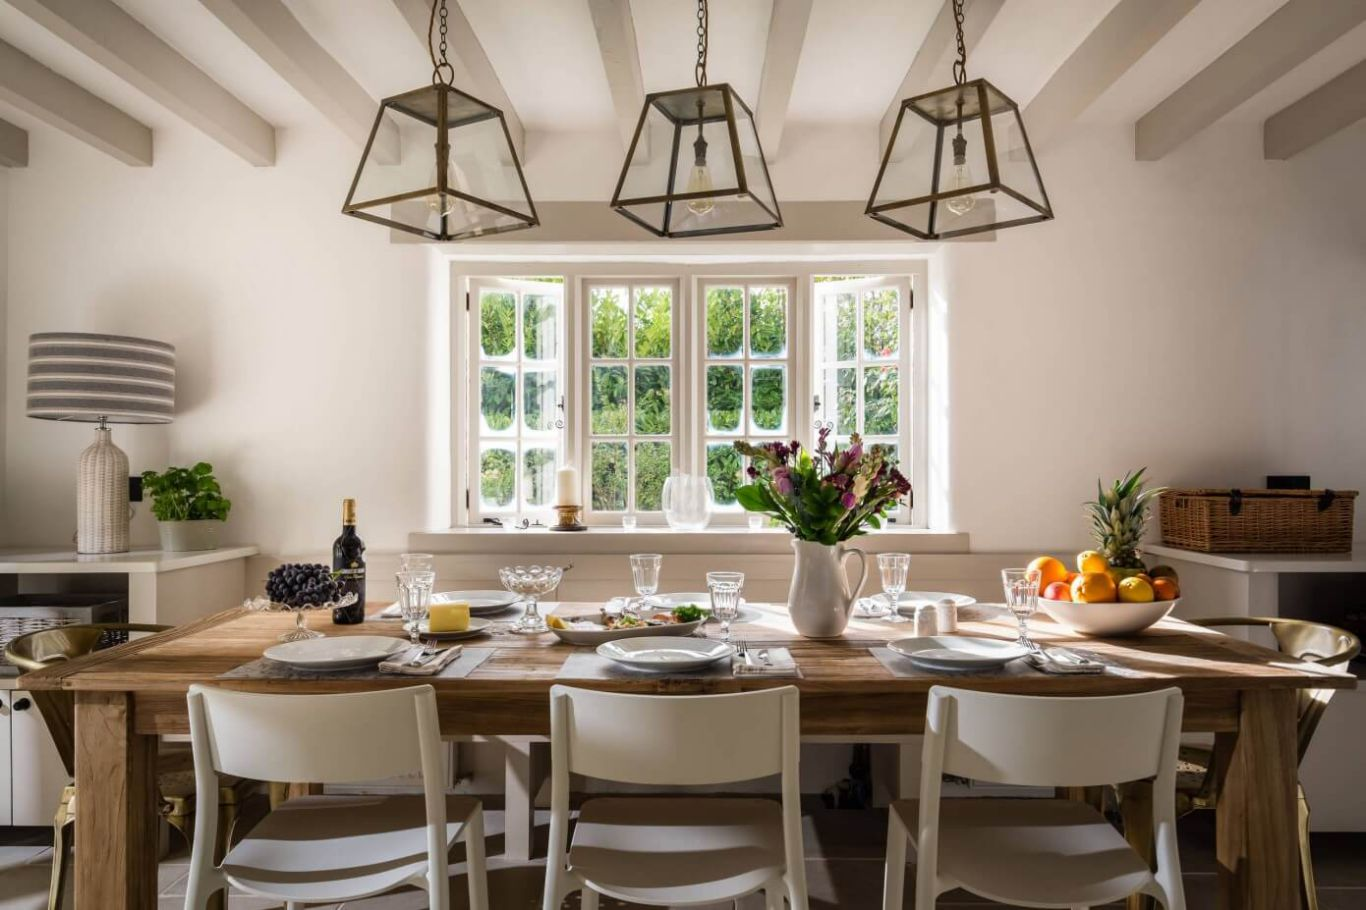 renovated 17th century cottage with large wooden dining table